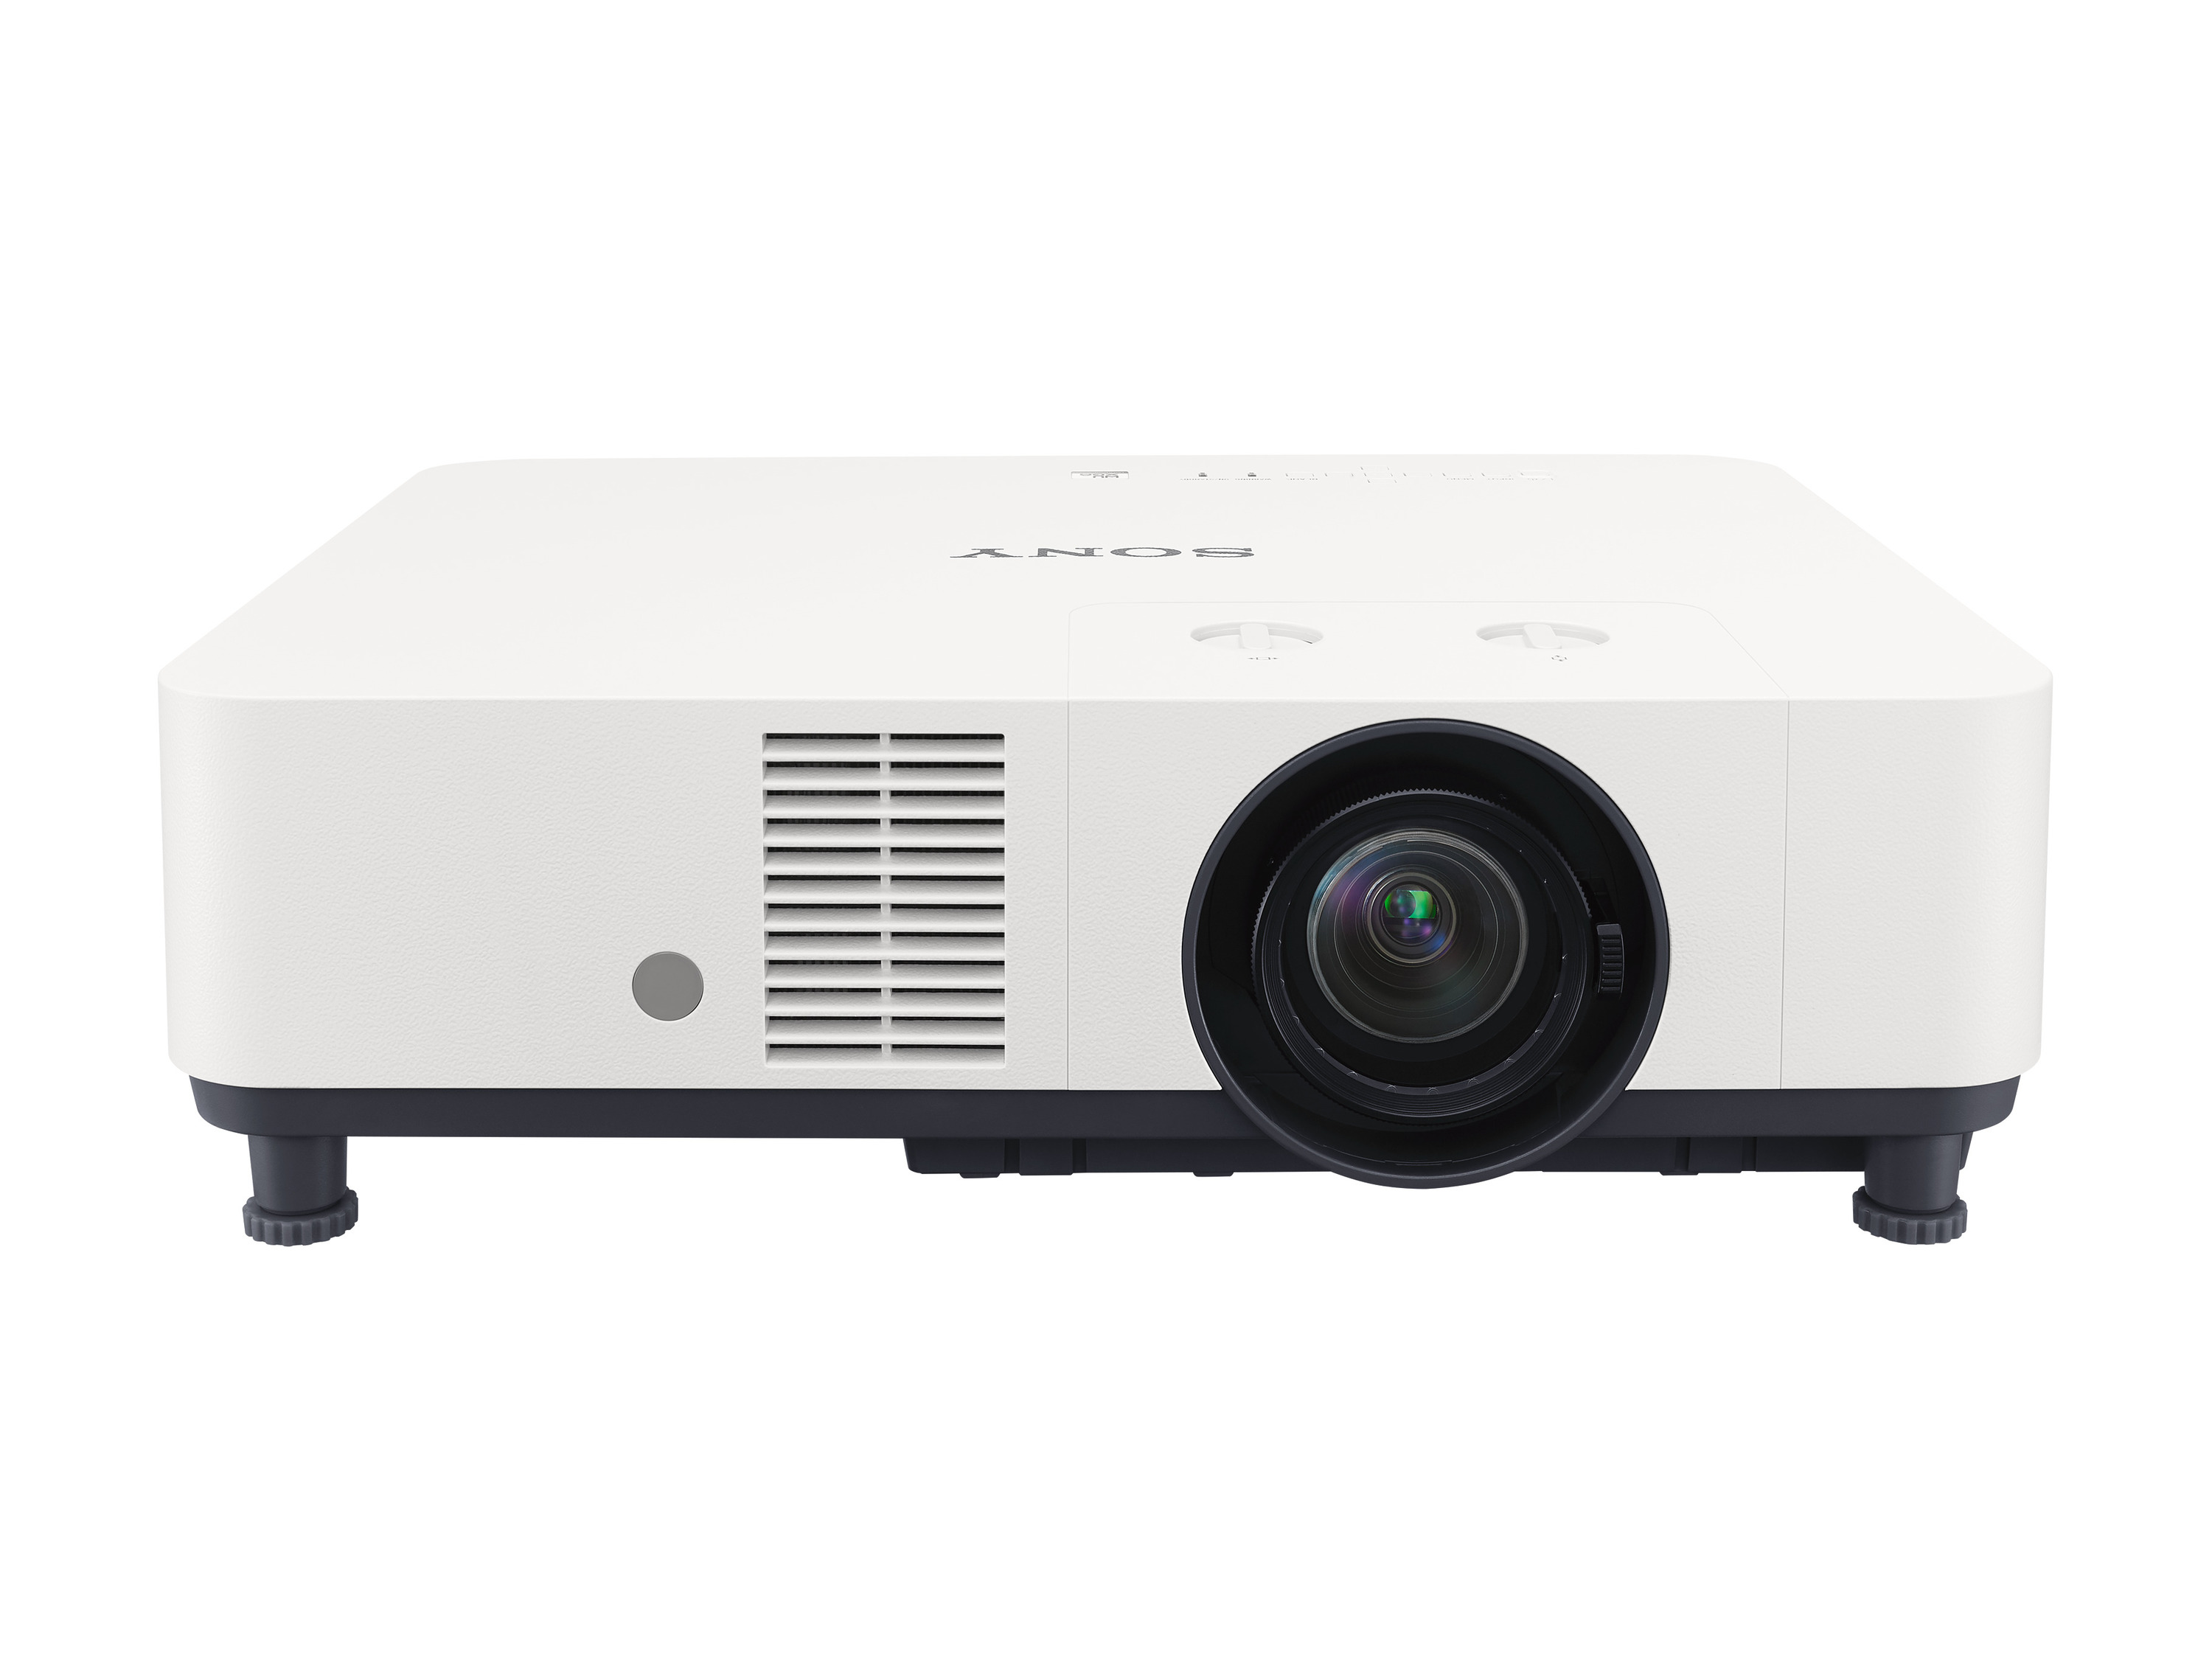 Sony Expands Laser Projector Lineup with Two New Compact and High Image Quality Models for Corporate, Education and Entertainment Applications